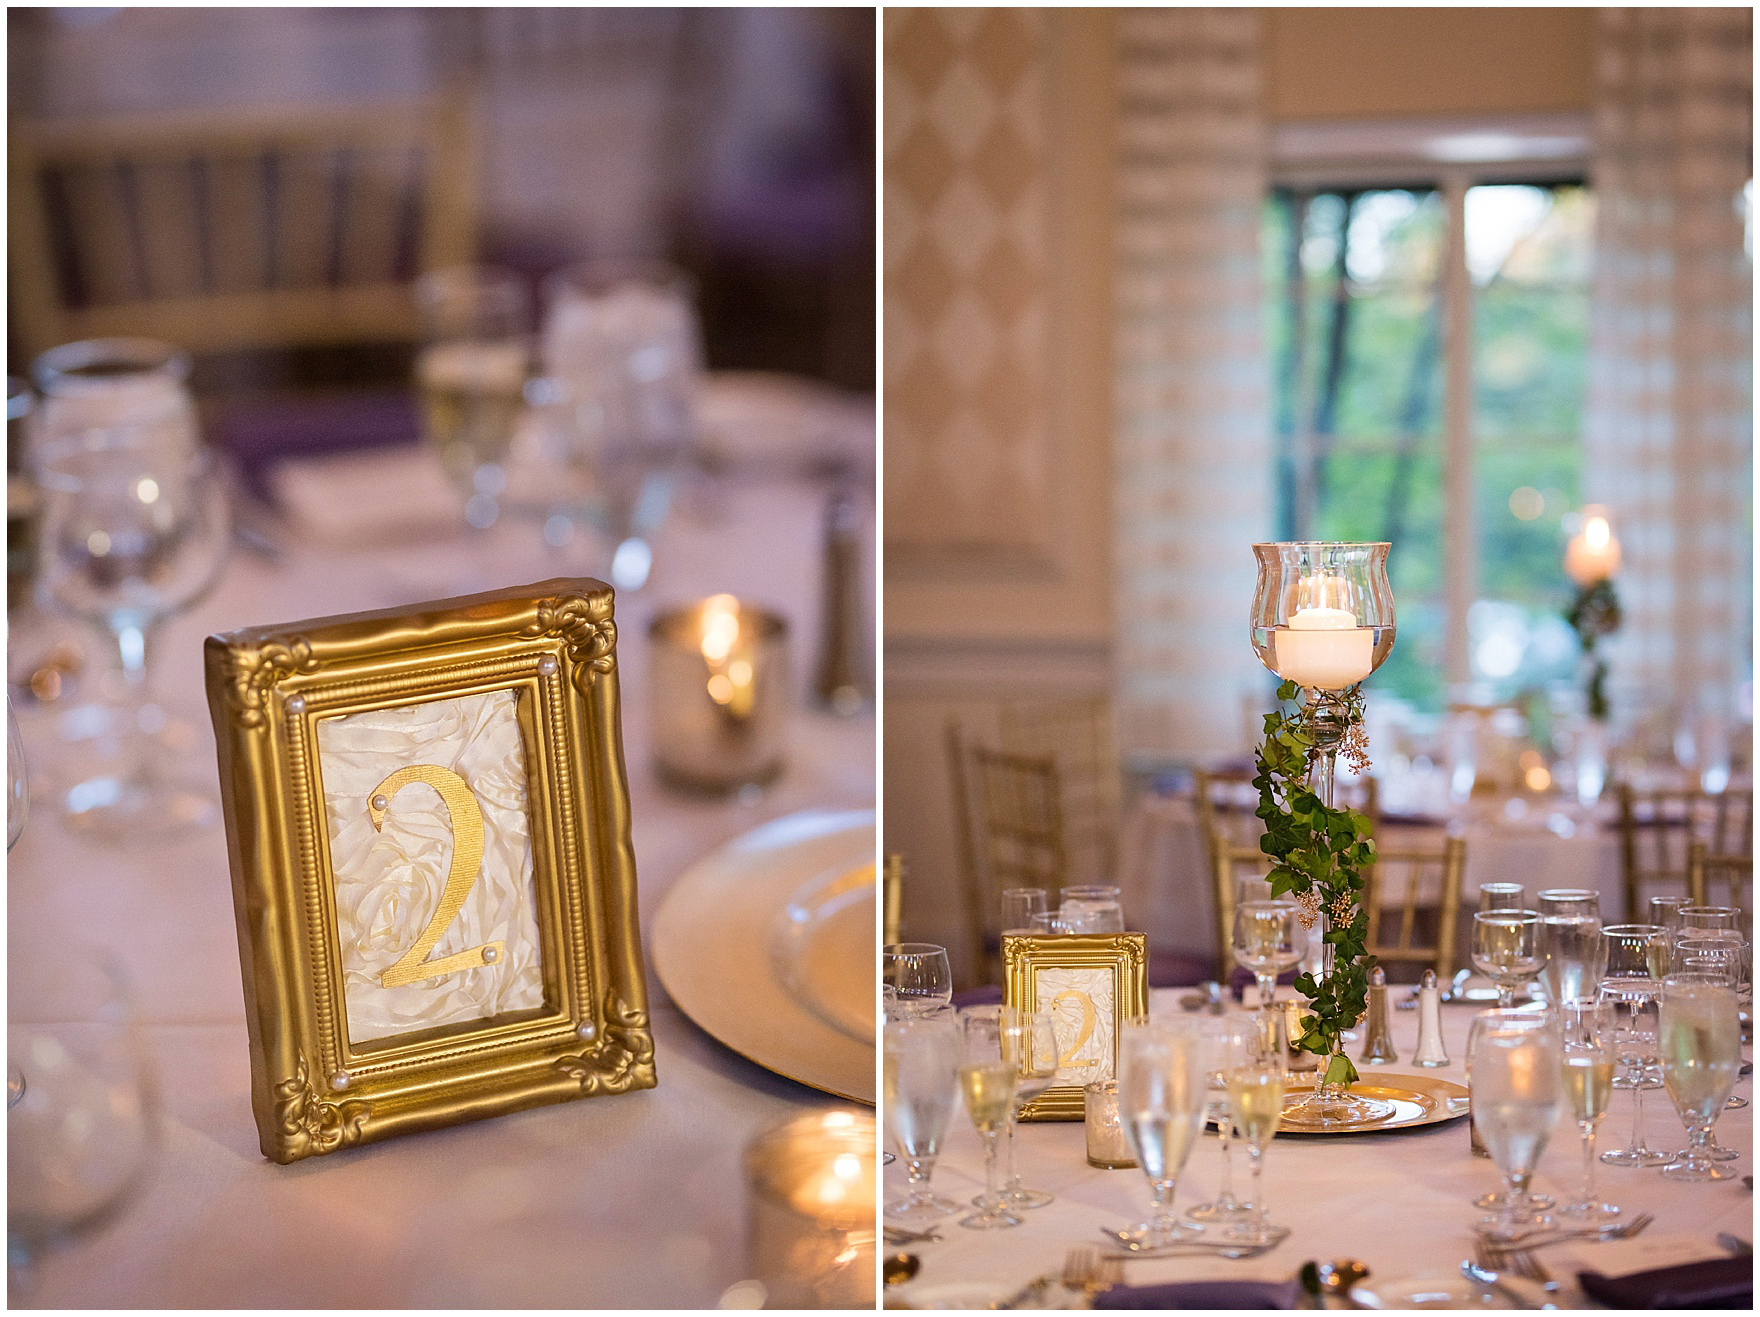 Gold table numbers and ivy decorate tables for a Glen Club Glenview Illinois wedding.